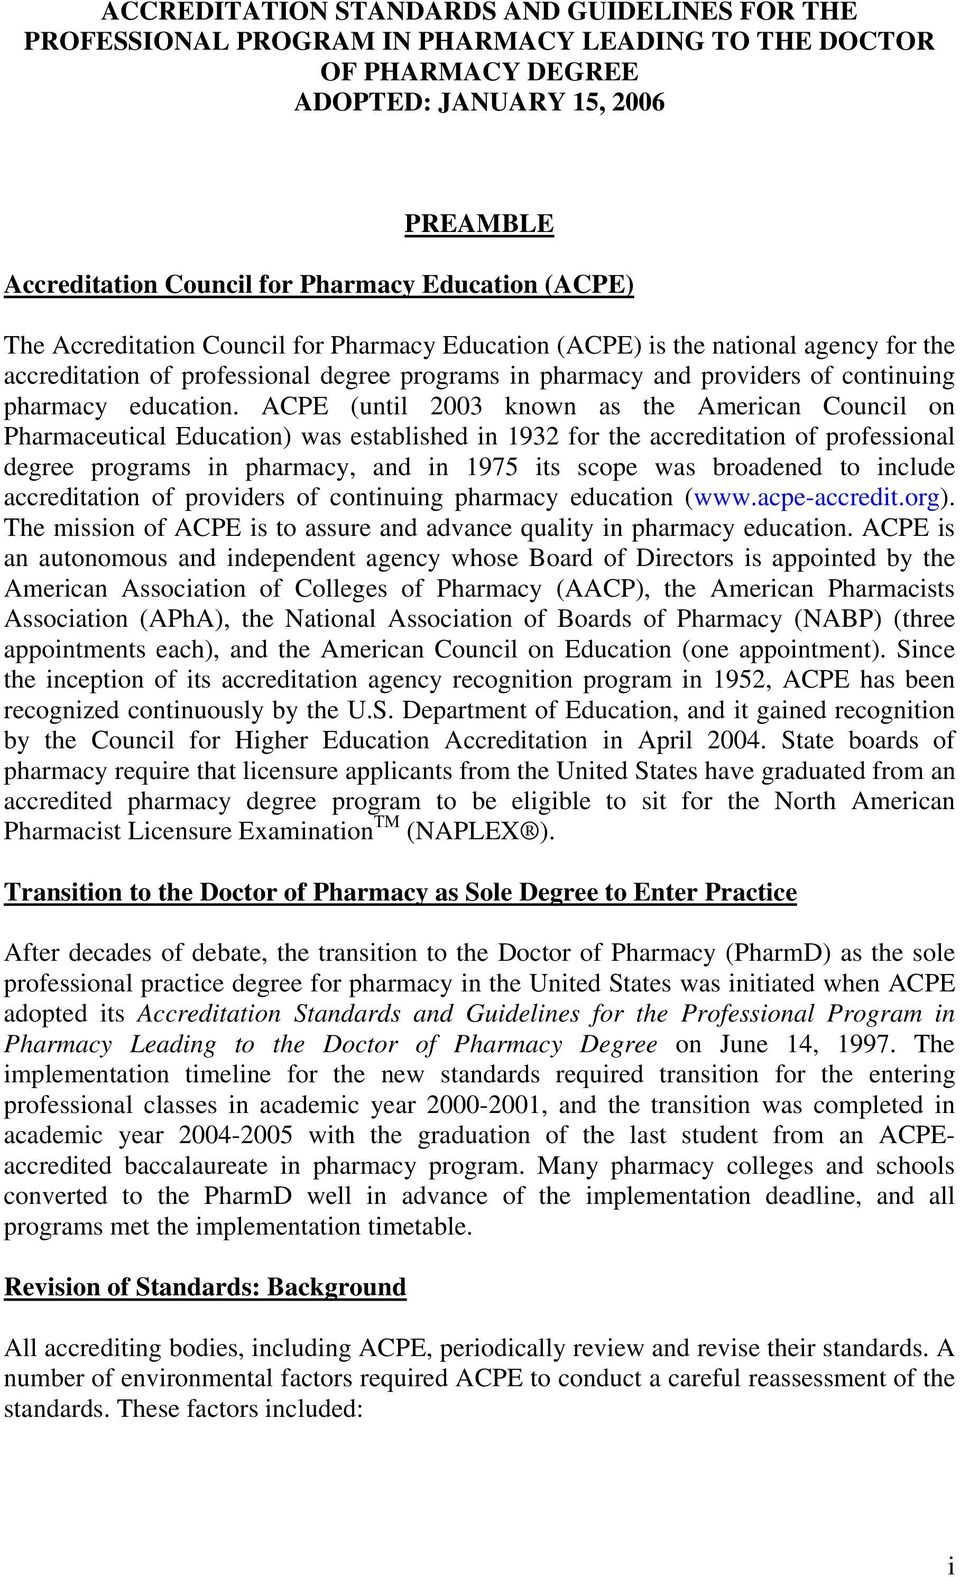 ACPE (until 2003 known as the American Council on Pharmaceutical Education) was established in 1932 for the accreditation of professional degree programs in pharmacy, and in 1975 its scope was